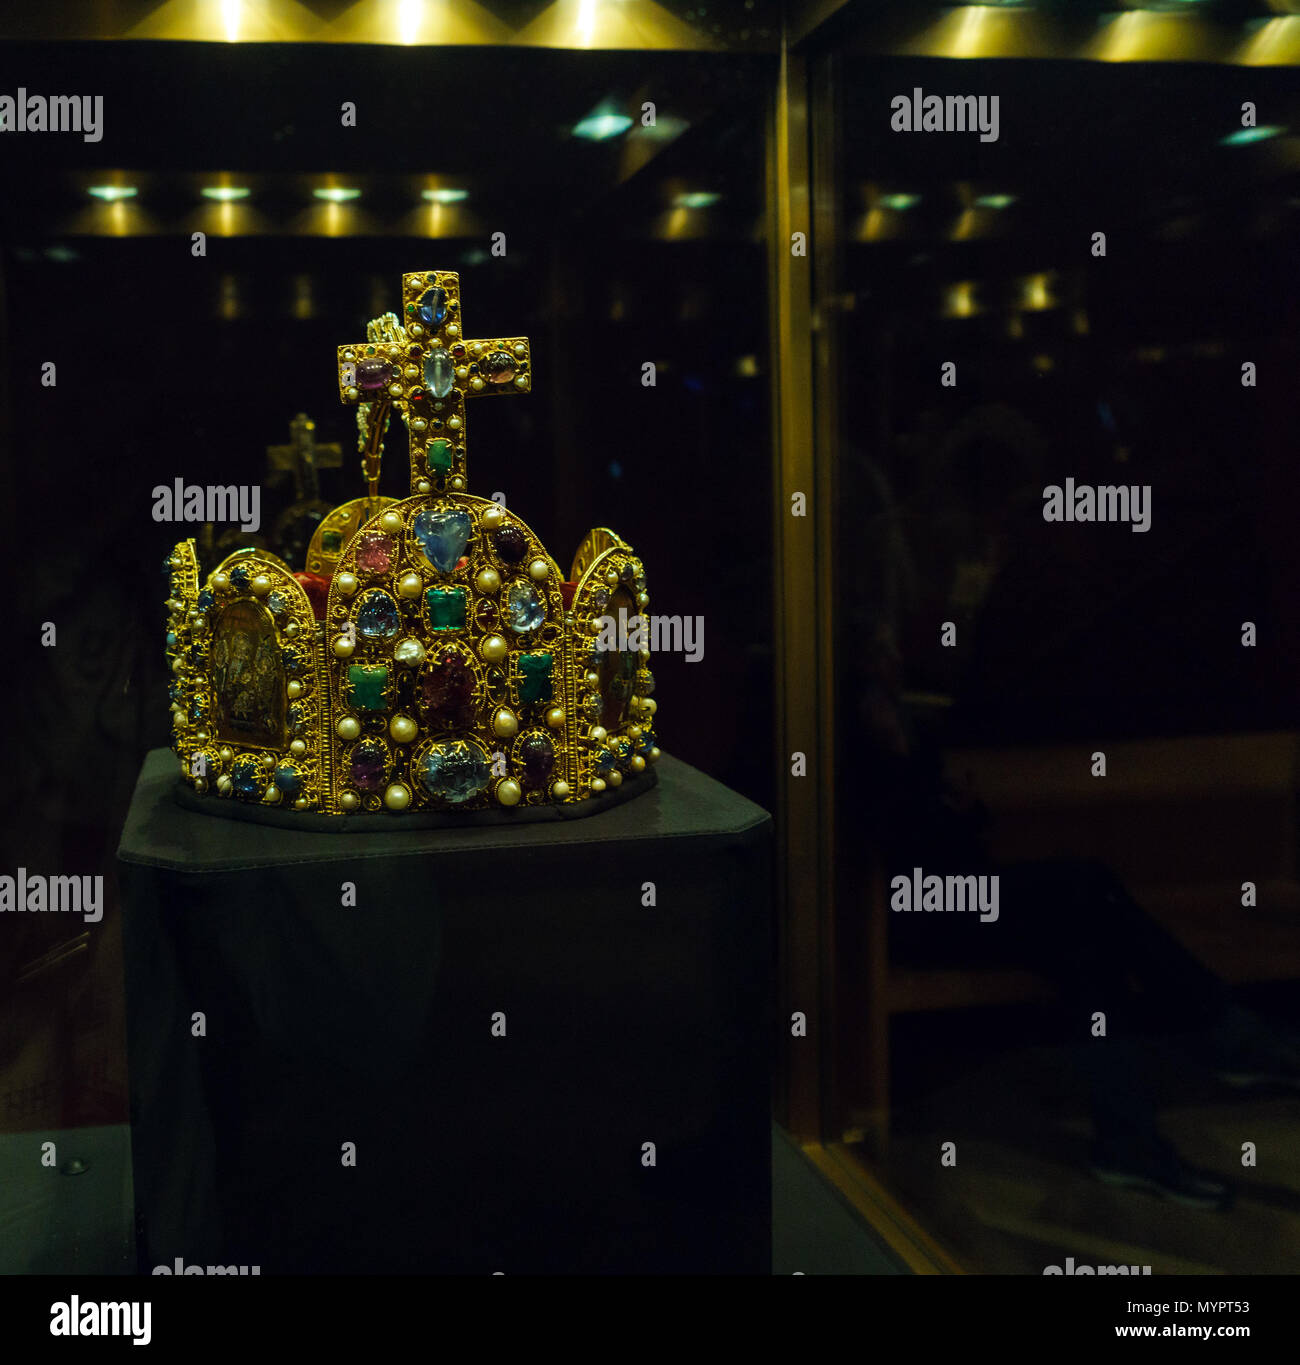 Wohndesign Hofburg 2017: Gold Regalia Golden Crown Stock Photos & Gold Regalia